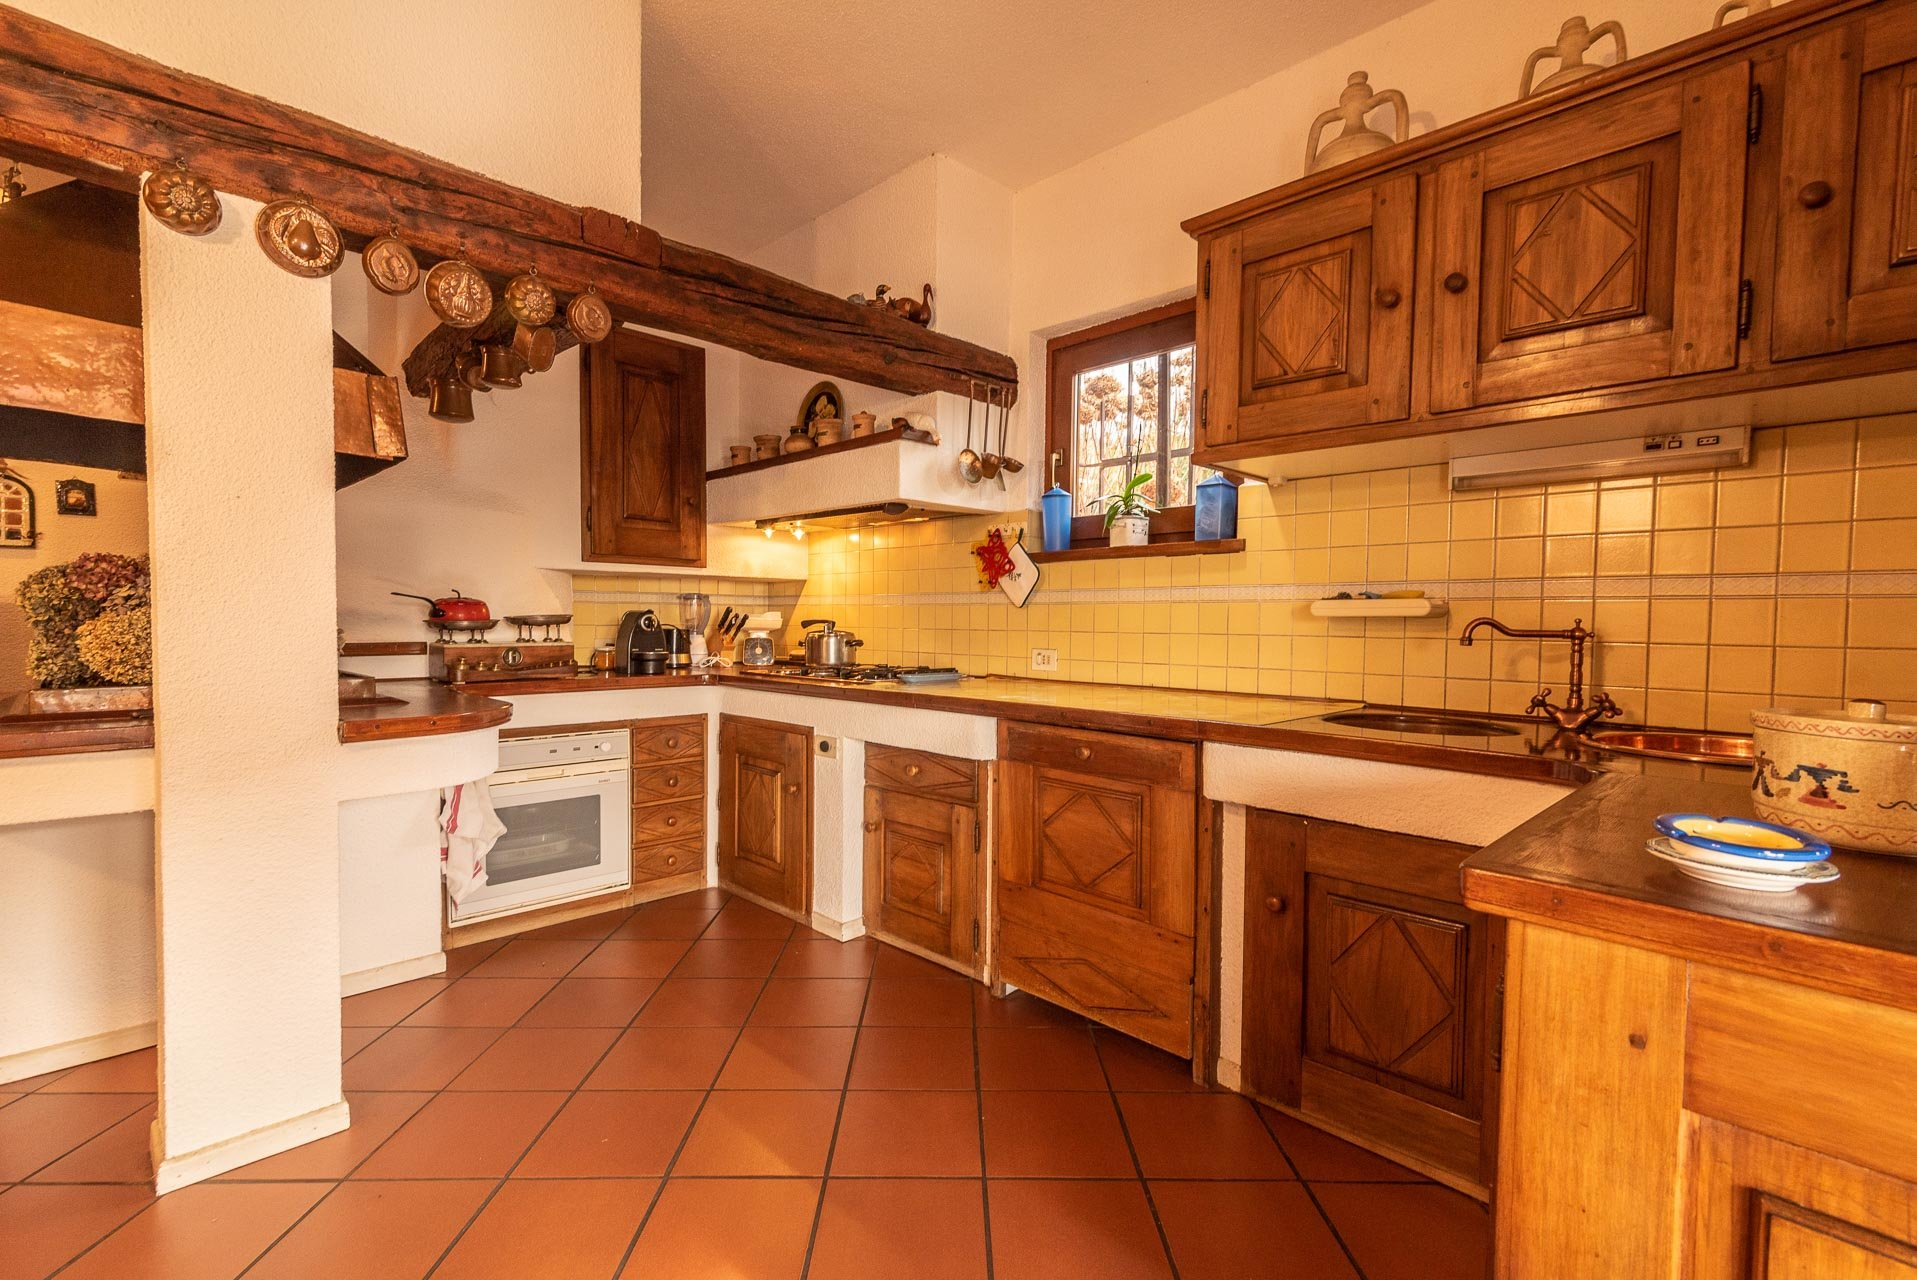 Elegant villa for sale in Pettenasco on Lake Orta - kitchen